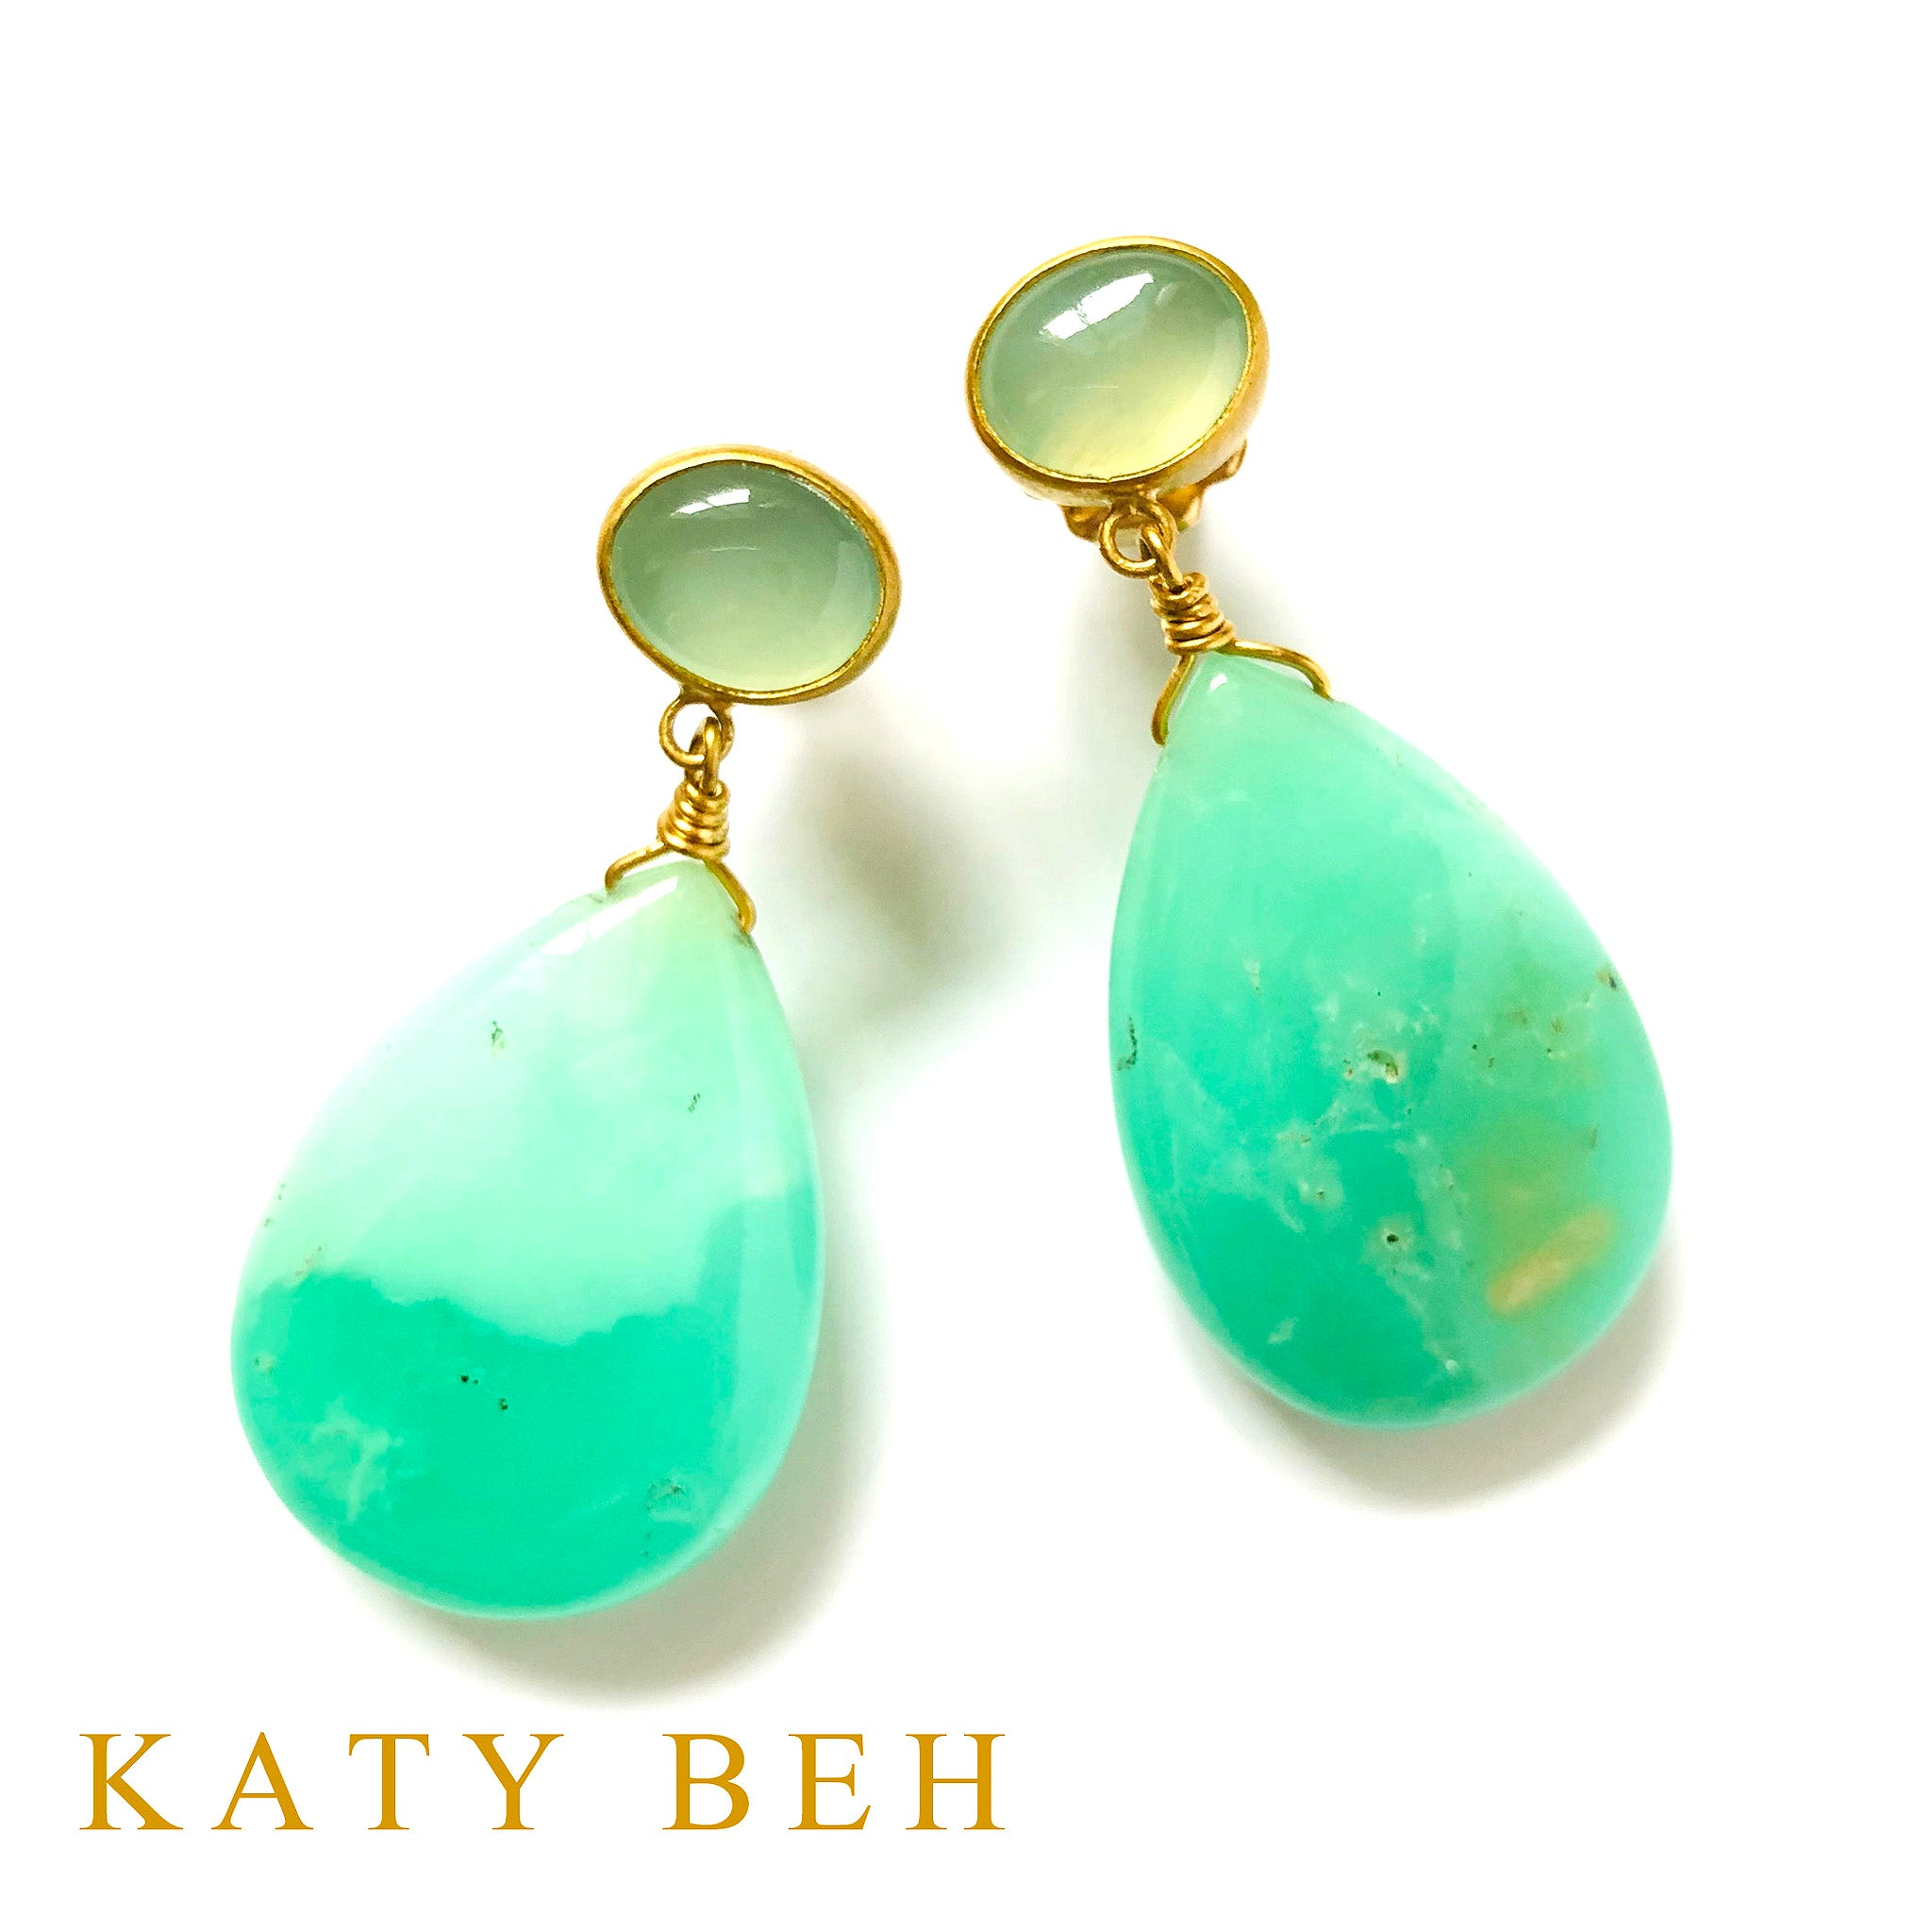 Jeongwya Peruvian Chalcedony and Chrysoprase Earrings